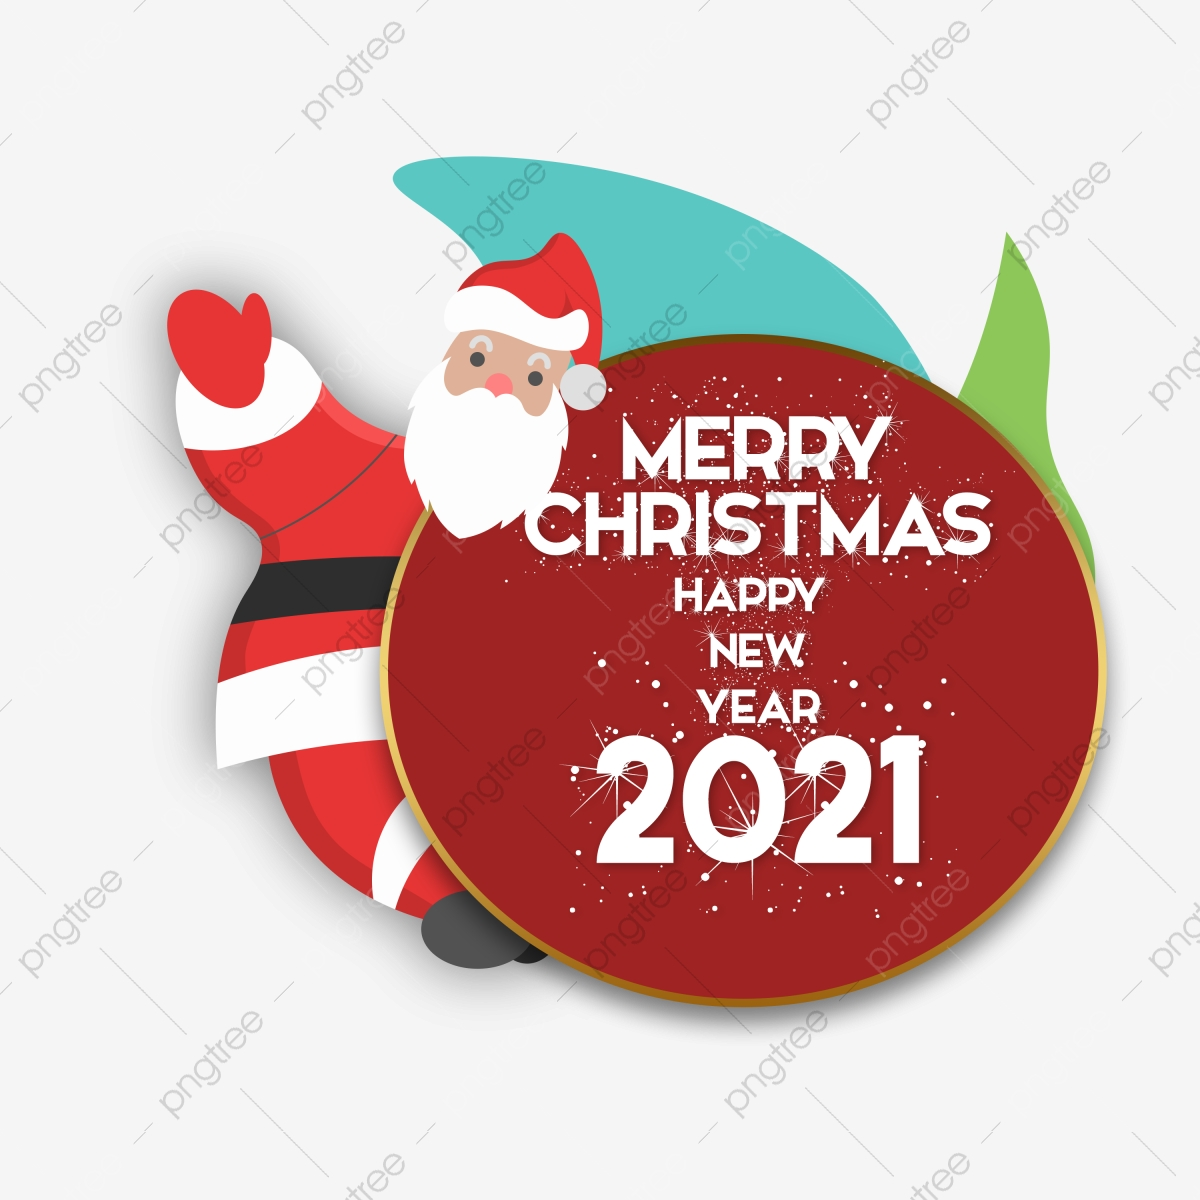 Merry Christmas 2021 Clipart 2021 Merry Christmas And Happy New Year With Funny Santa Claus Santa Clipart Santa Claus Png Transparent Clipart Image And Psd File For Free Download